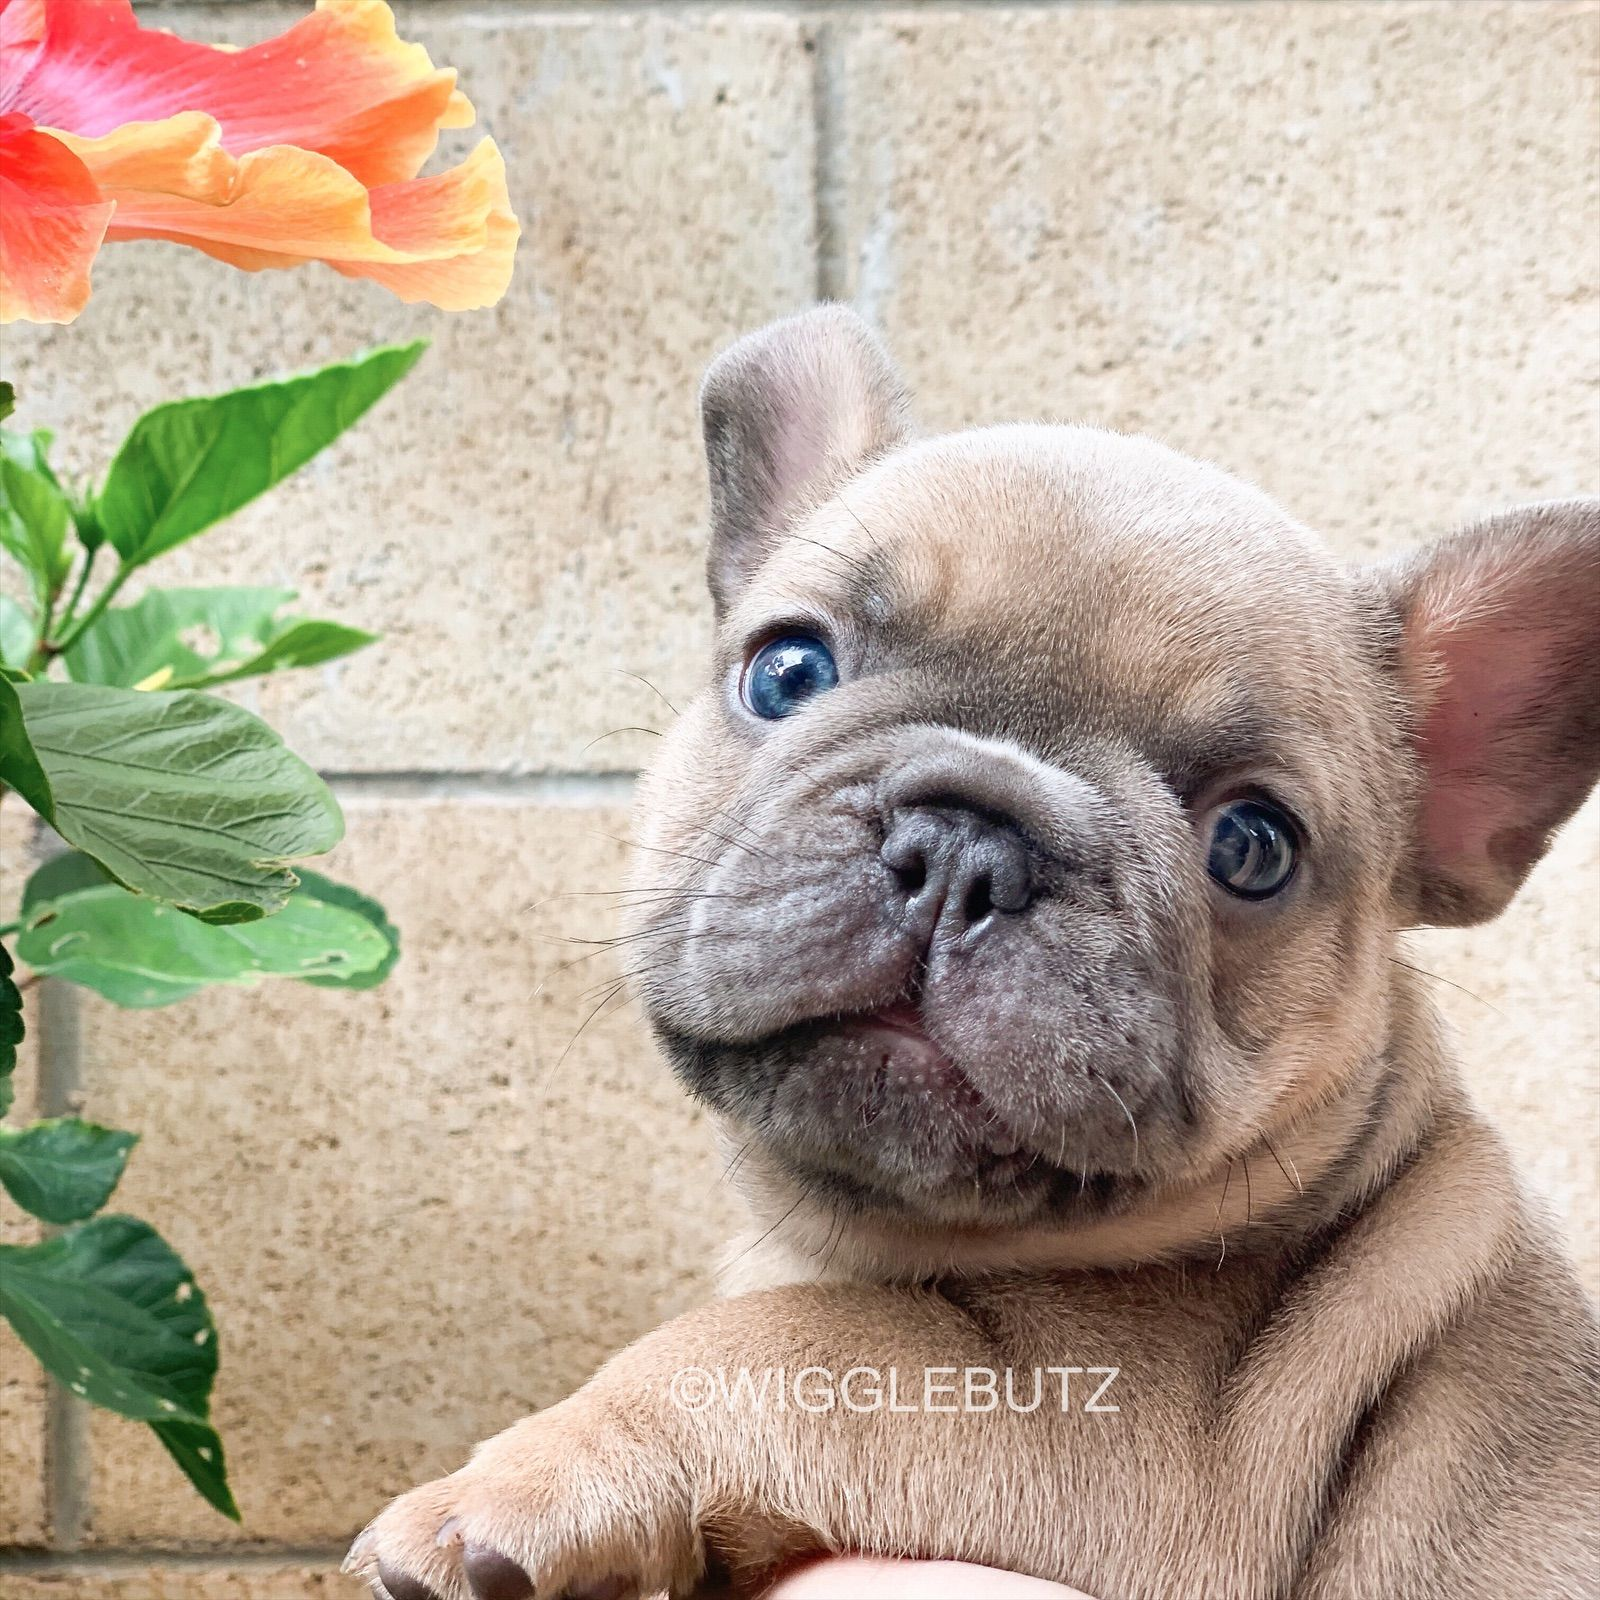 Blue Fawn Baby Frenchie Puppy In 2020 Bulldog Puppies Blue Fawn French Bulldog Bulldog Puppies For Sale